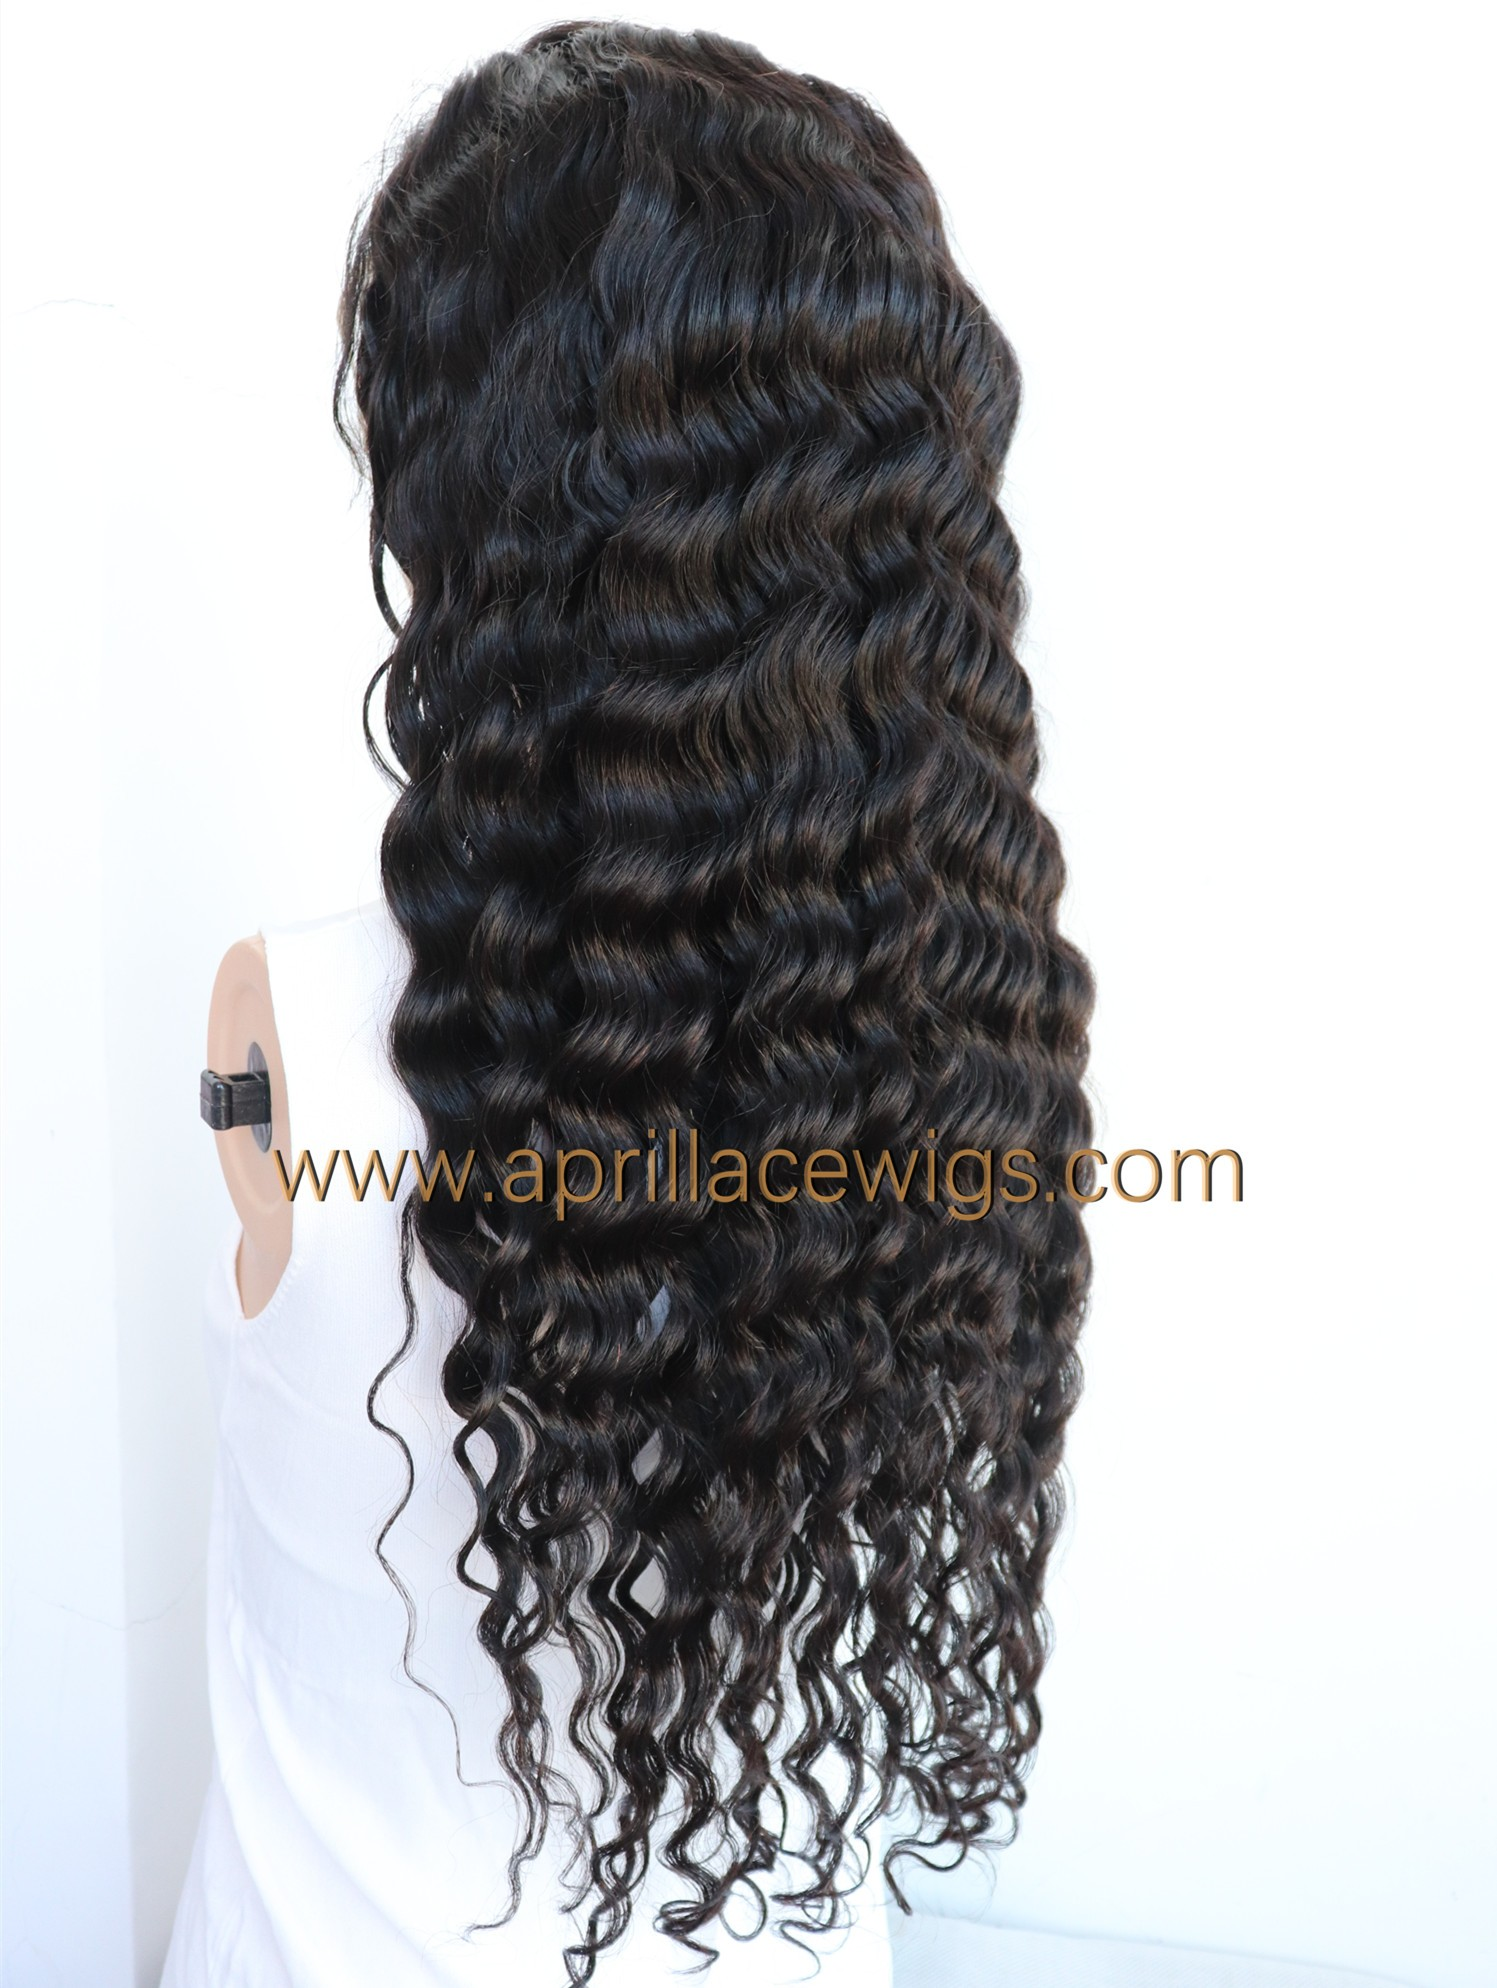 Brazilian virgin natural wave glueless 360 glueless wig preplucked hairline